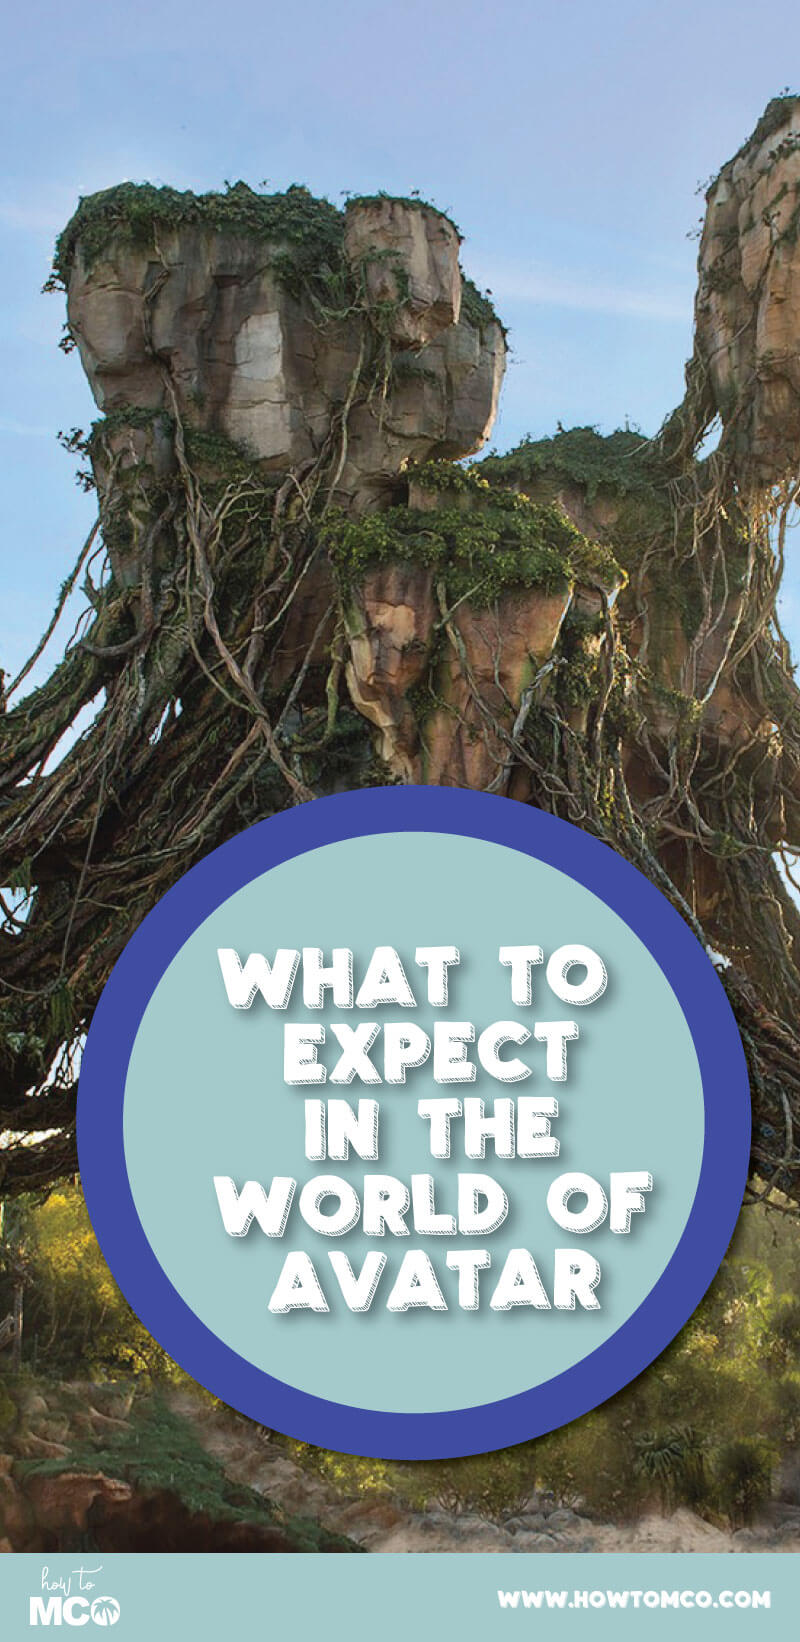 The opening of Avatar is just a few short months away! Here is what we know about what to expect in Pandora the World of Avatar so far!